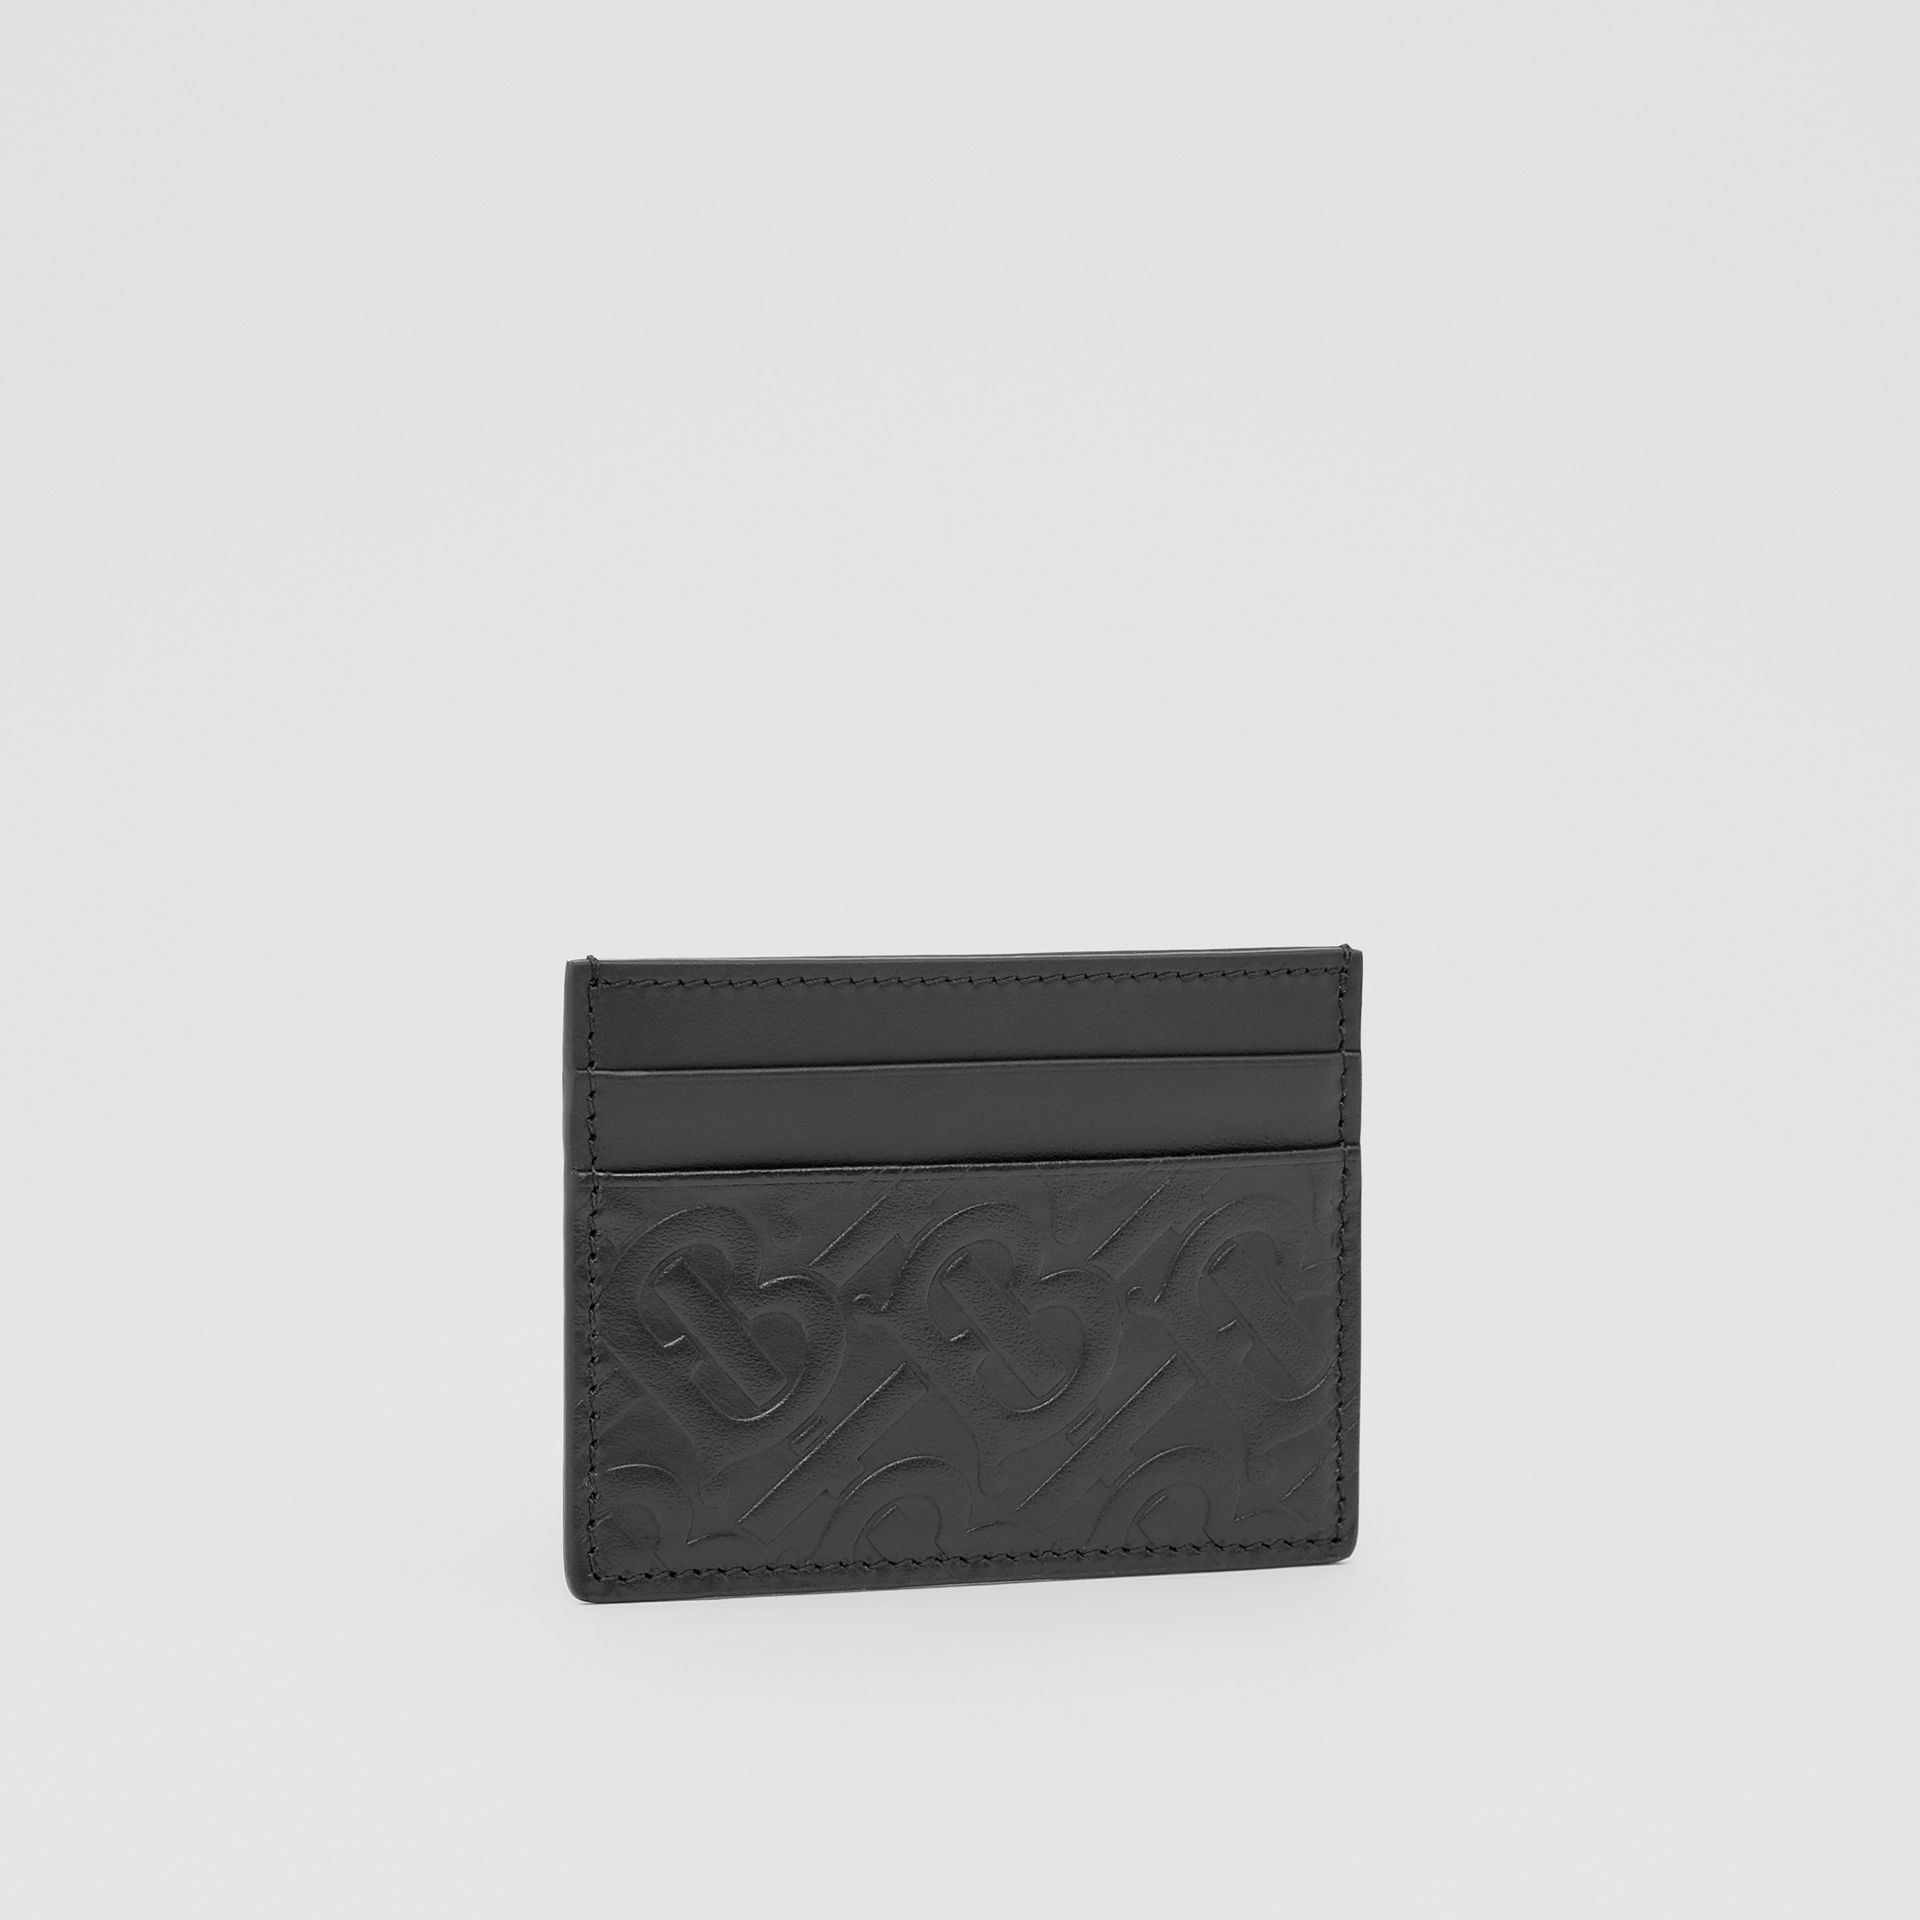 Monogram Leather Card Case in Black | Burberry - gallery image 3